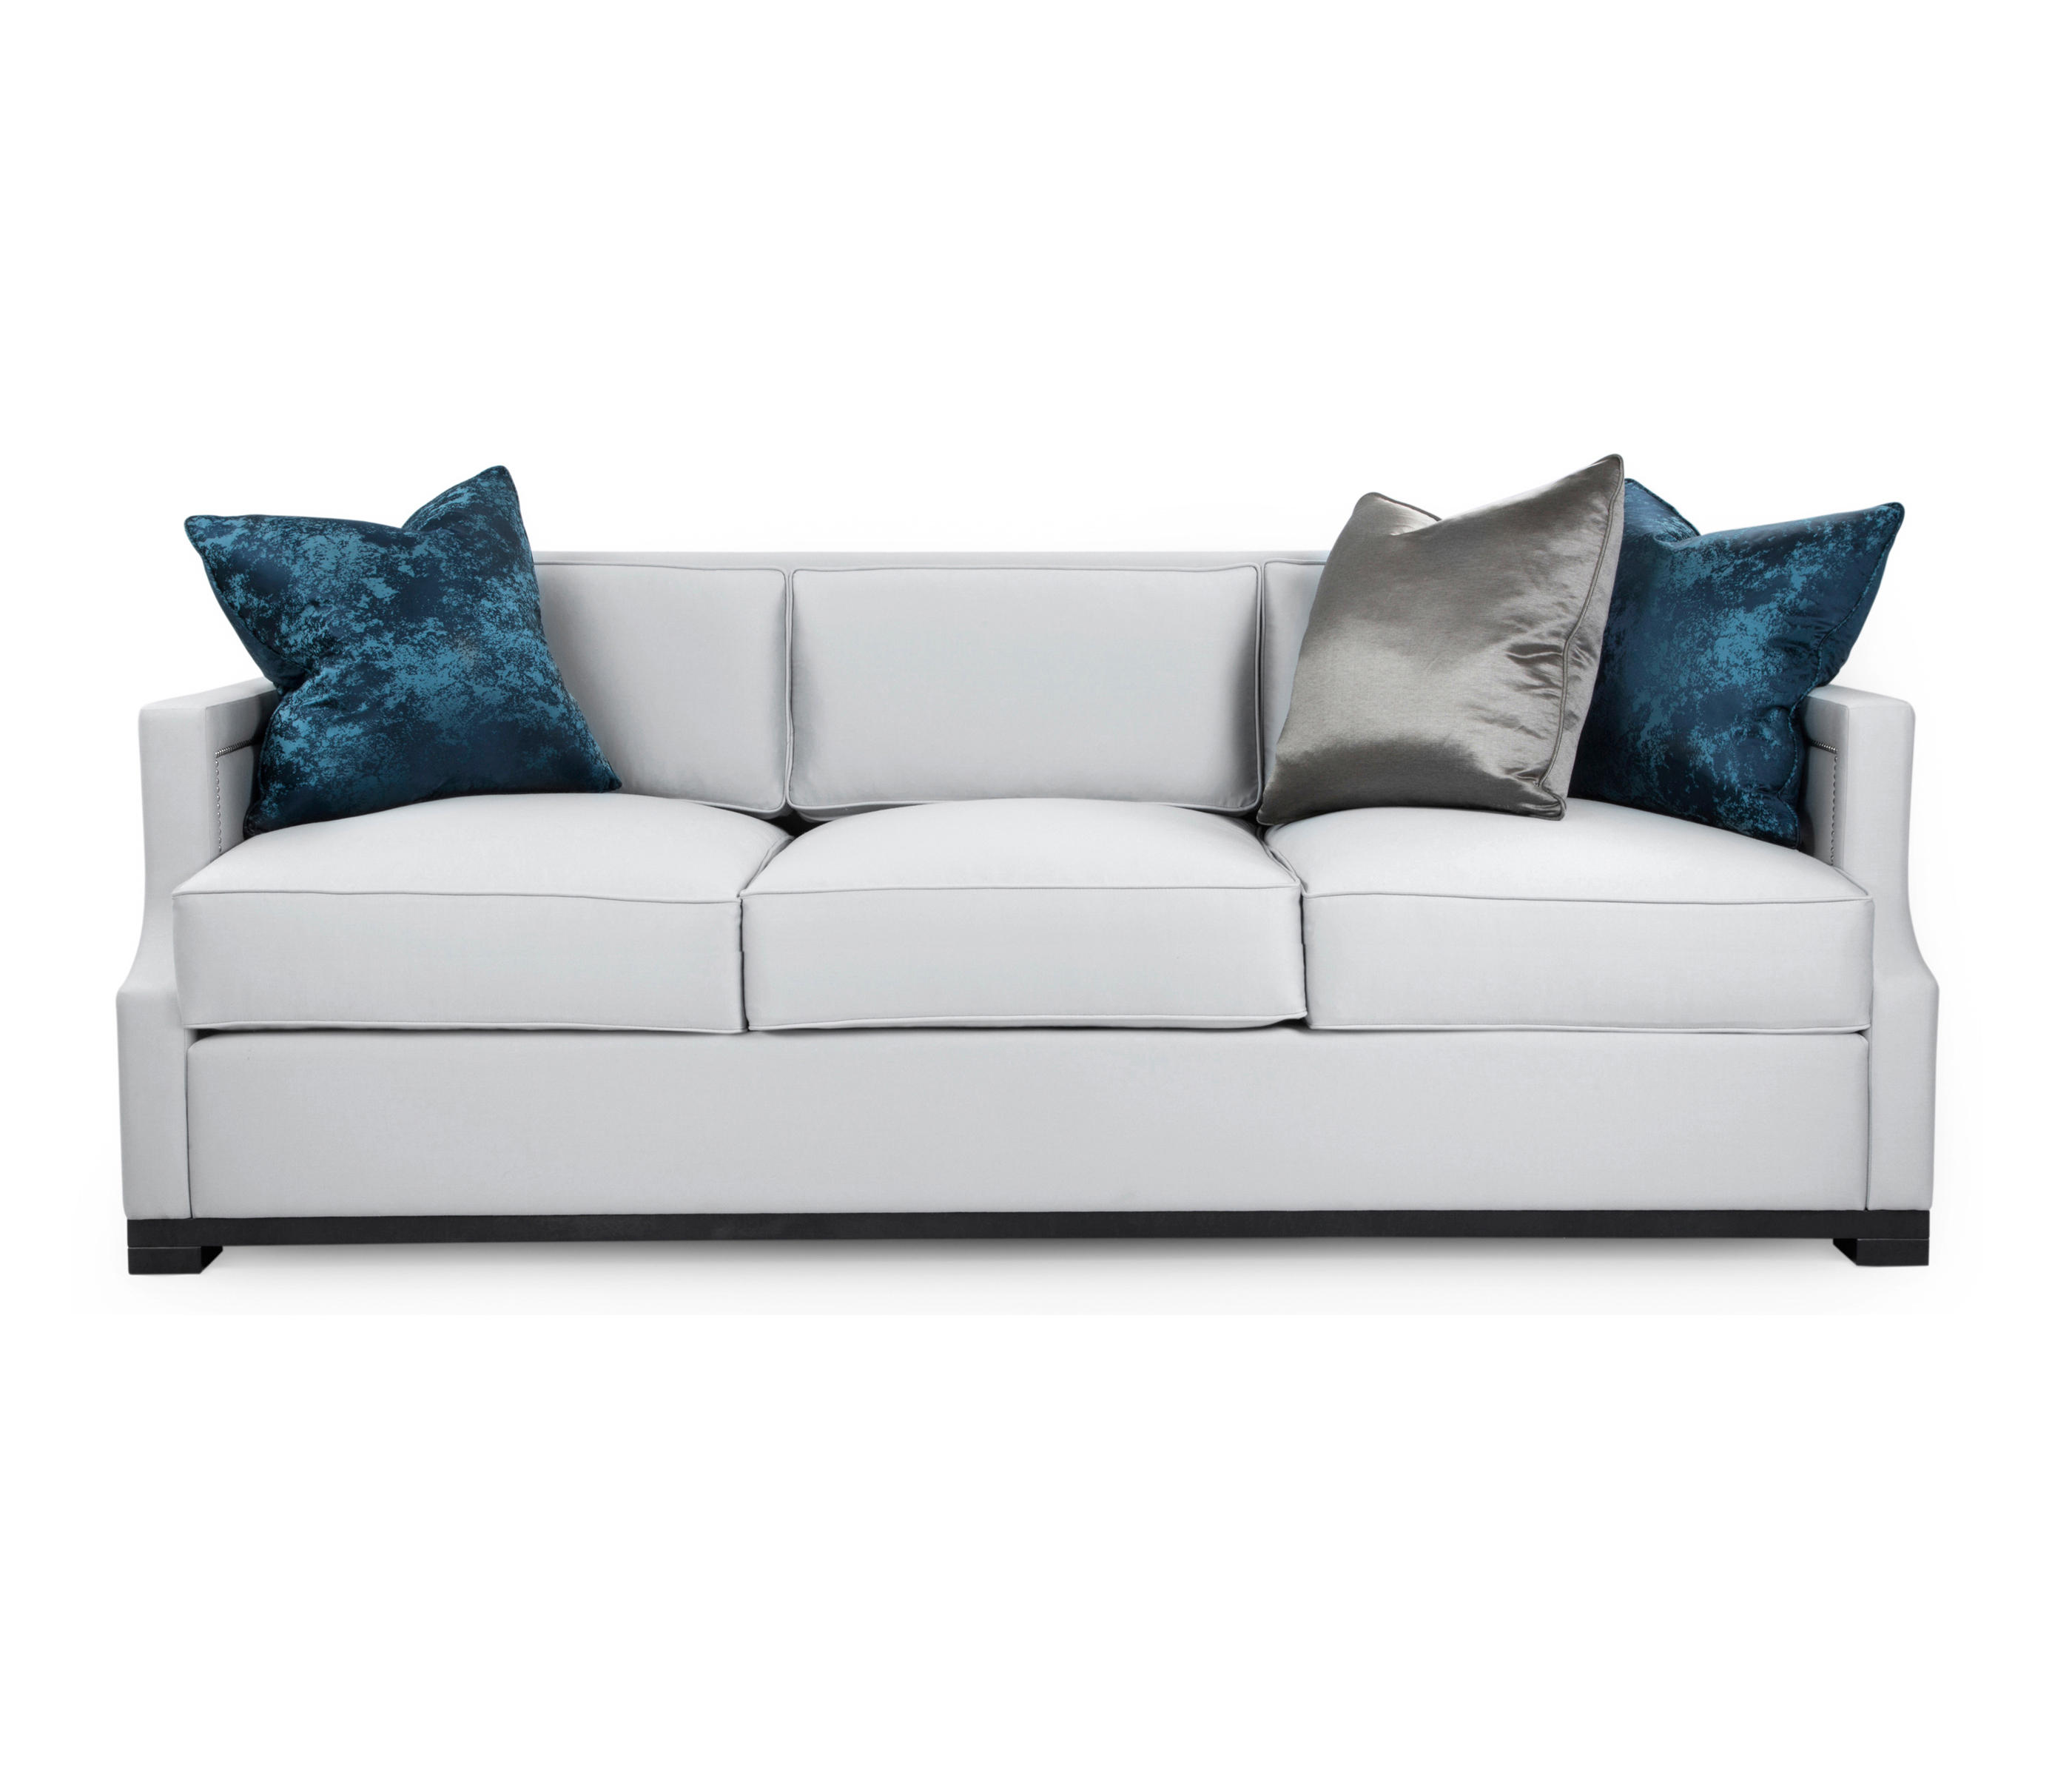 Belvedere sofa lounge sofas from the sofa chair for Sofa company